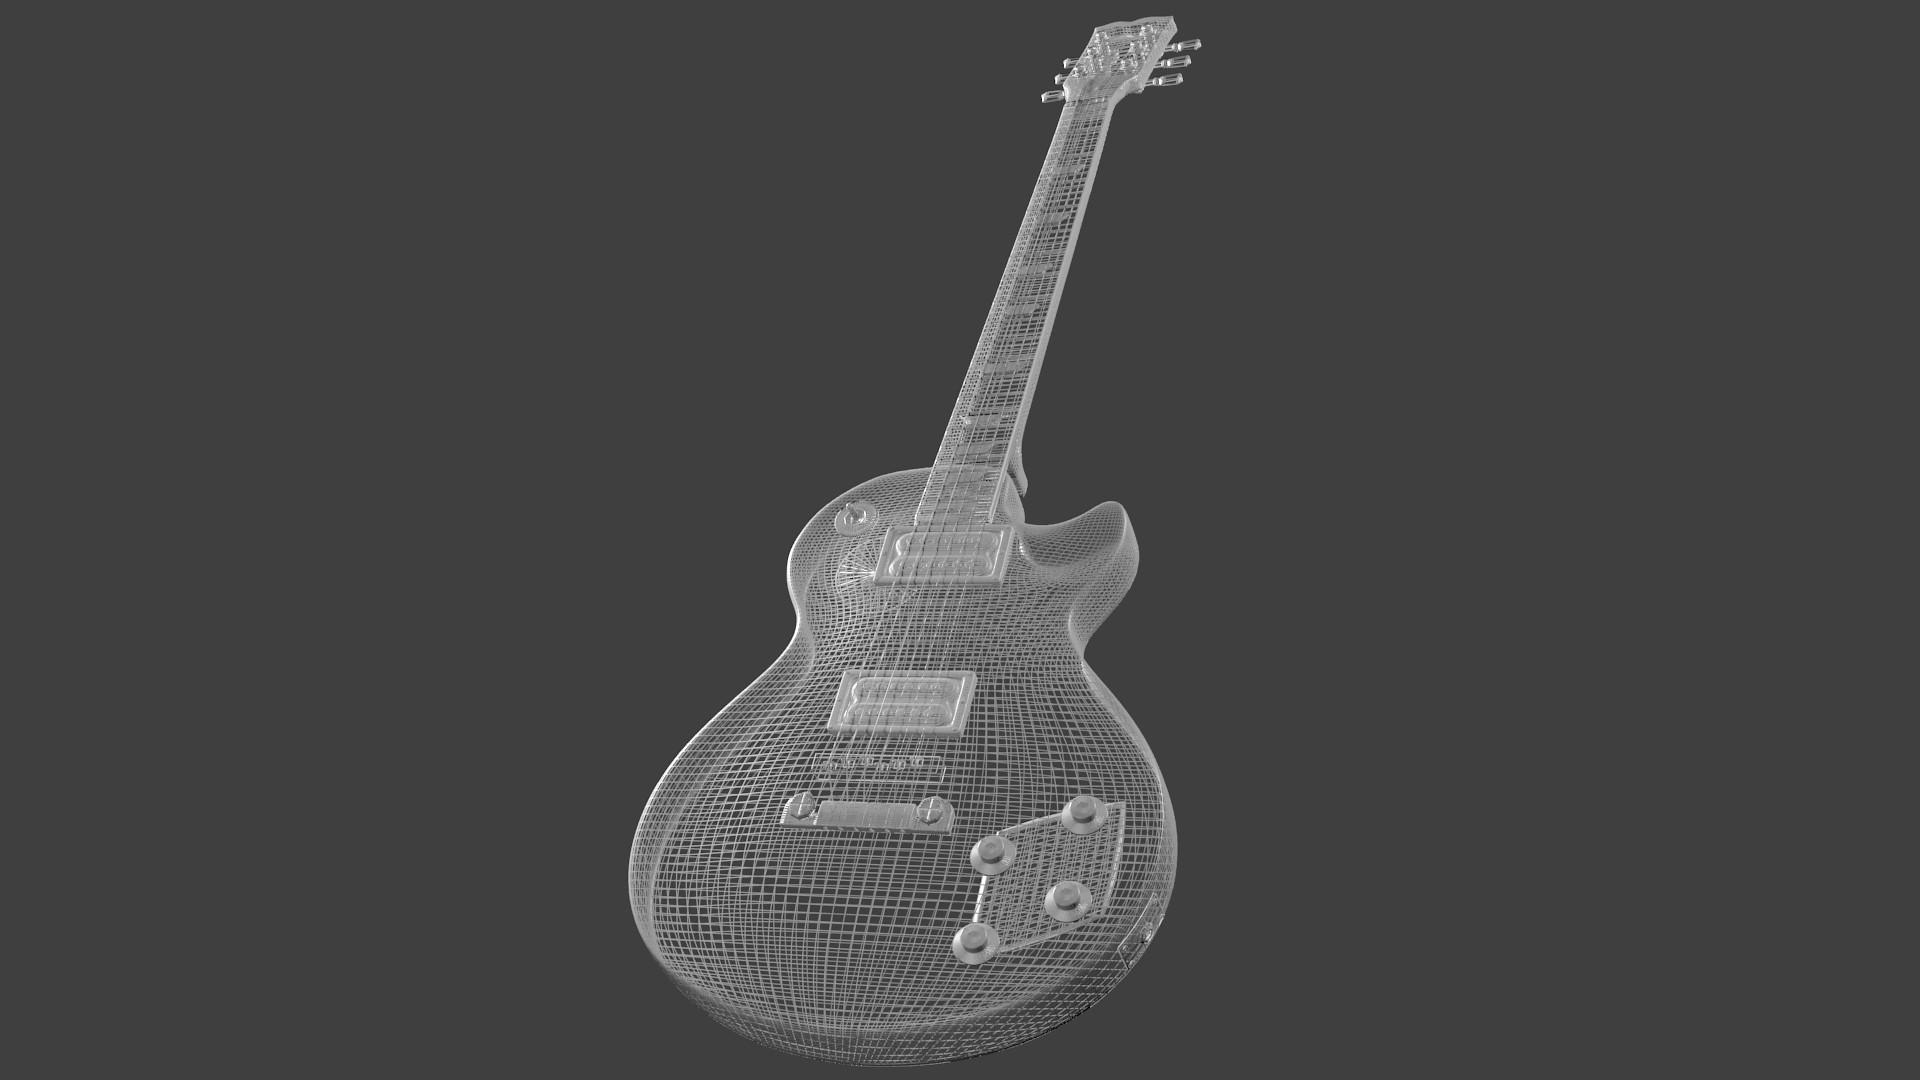 gibson les paul guitar 3d model obj cgtrader